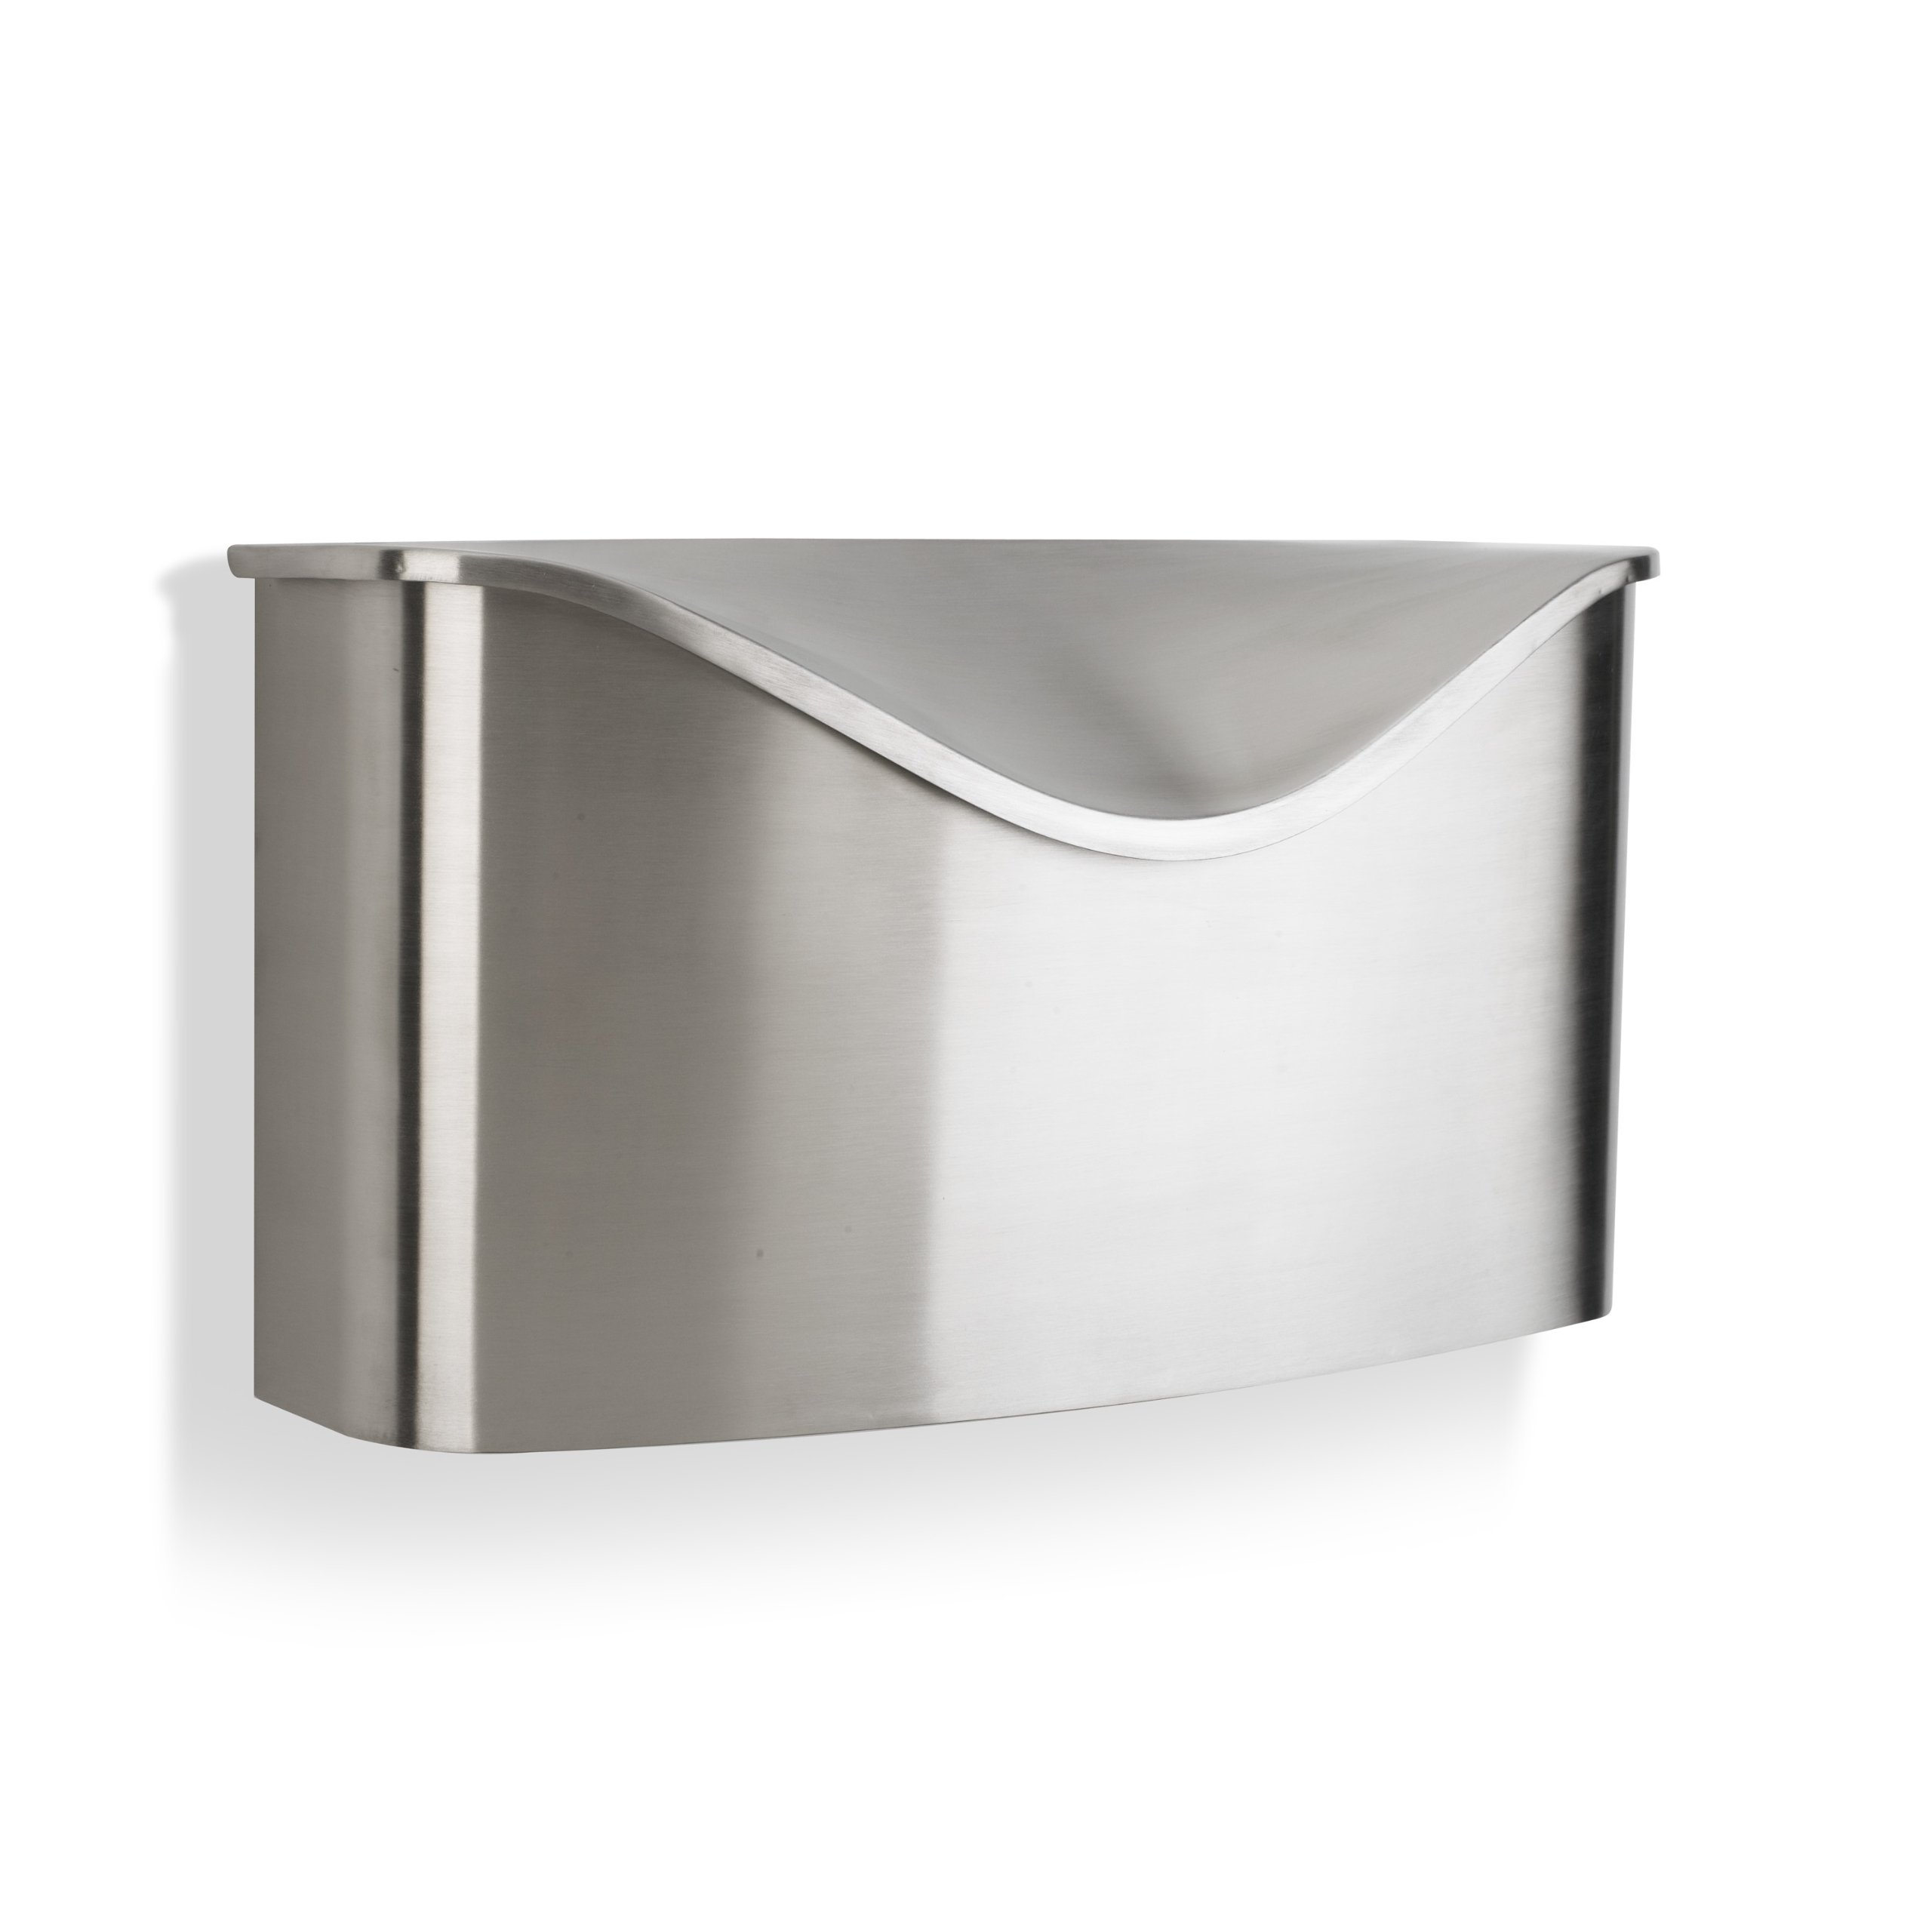 Umbra Postino Wall-Mount Mailbox, Stainless Steel